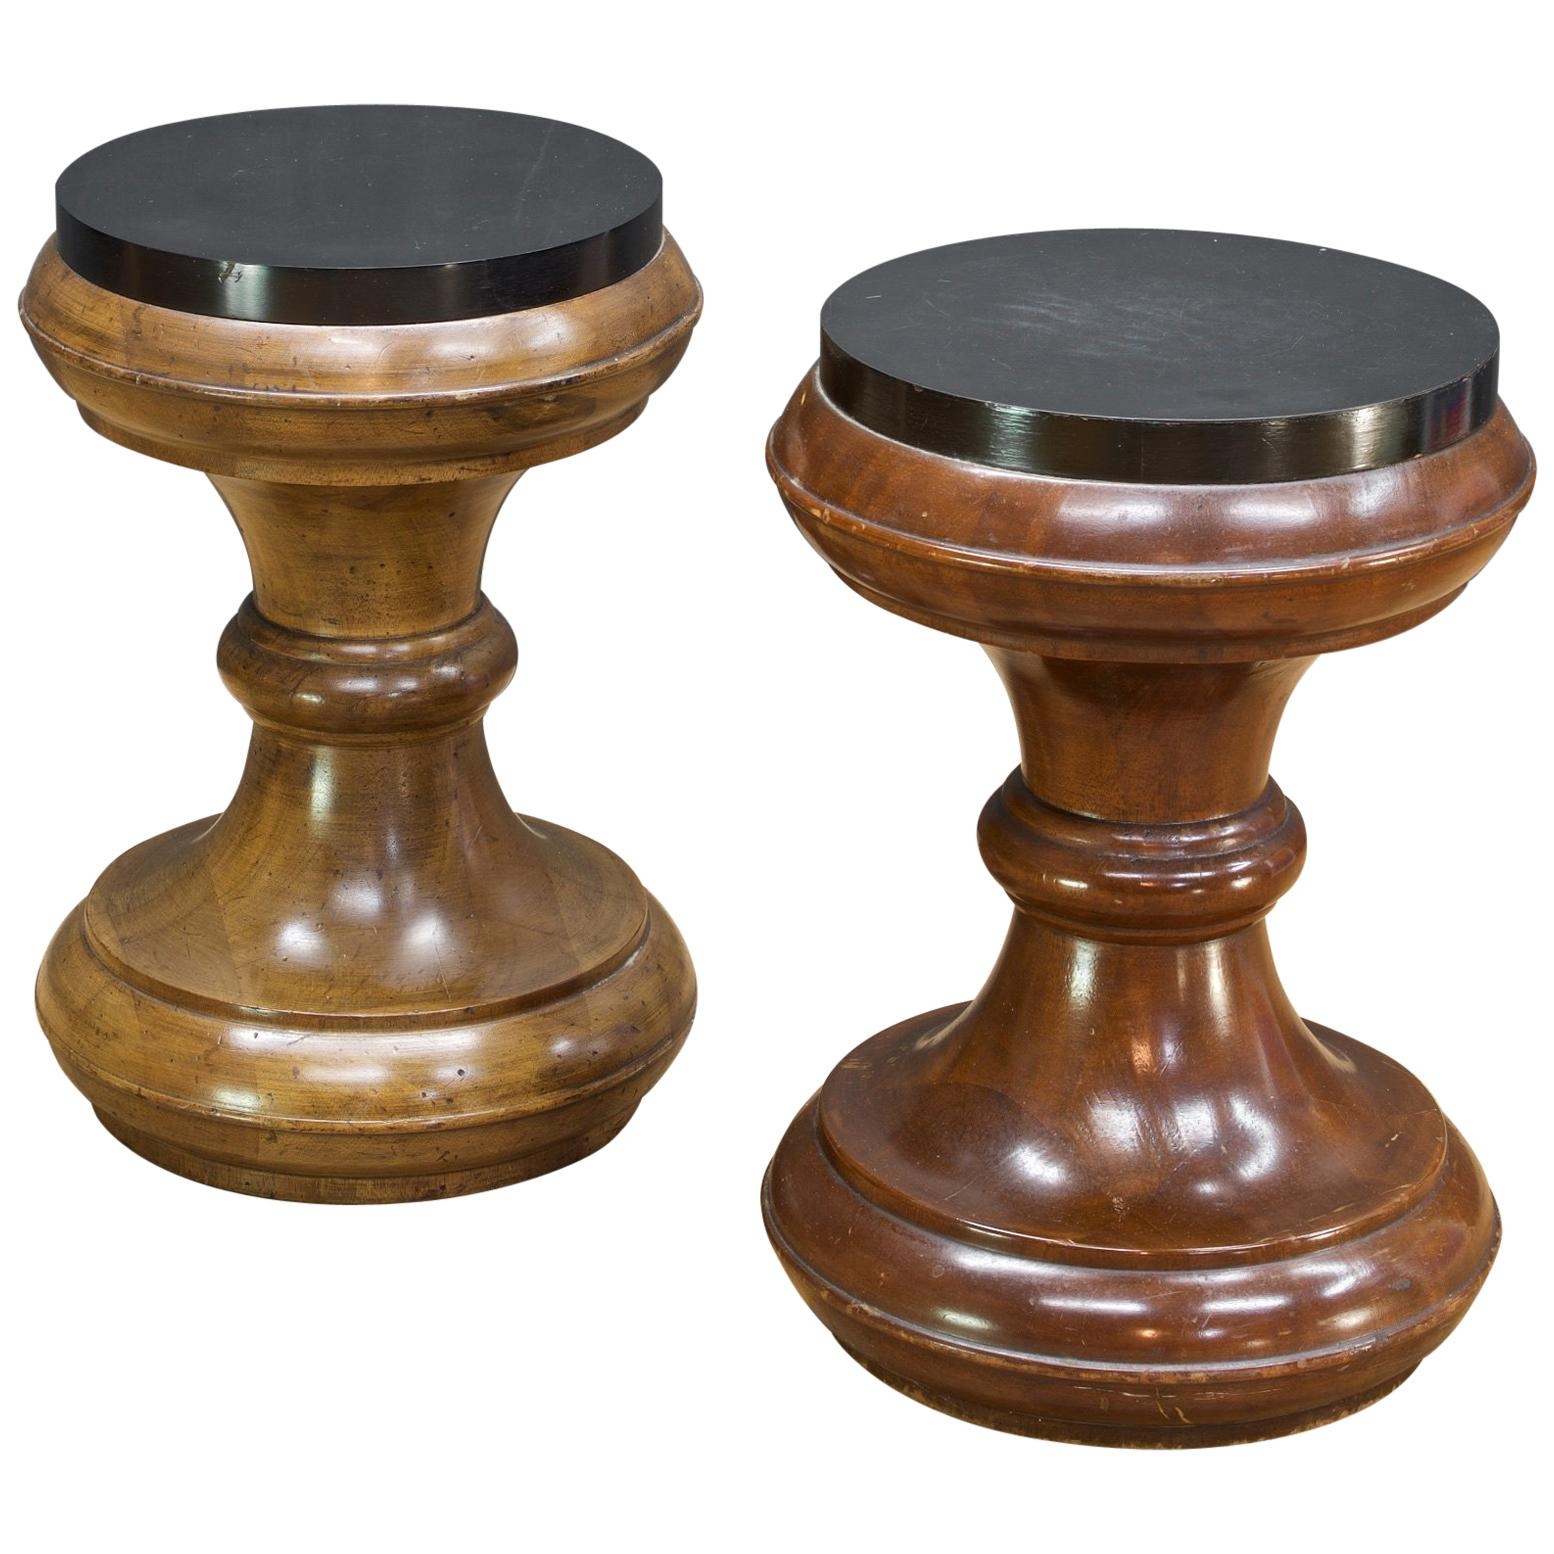 Pair of Vintage Staved Mahogany Chess Piece Table Stool Bohemian Plant Stand